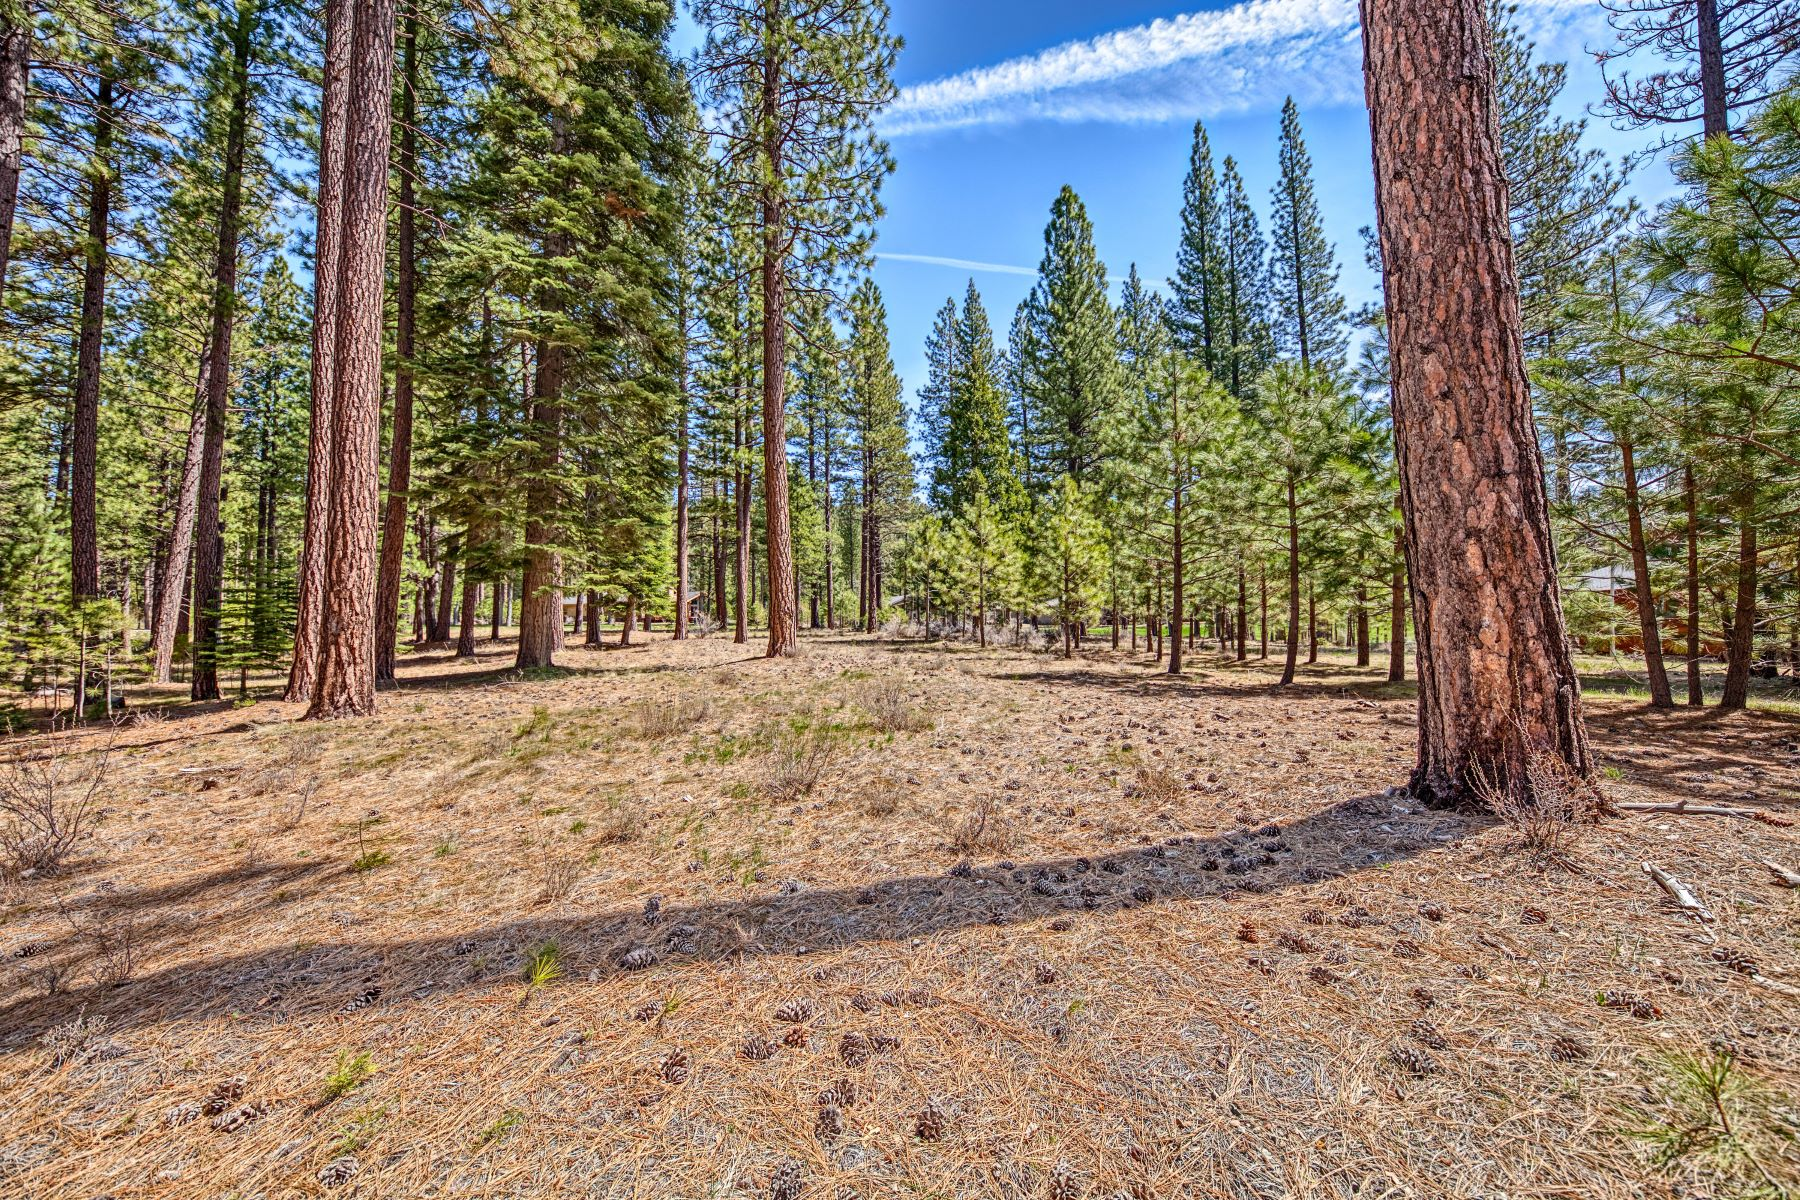 Terreno por un Venta en 148 Black Bear Trail, Clio, CA 96106 148 Black Bear Trail Clio, California 96106 Estados Unidos